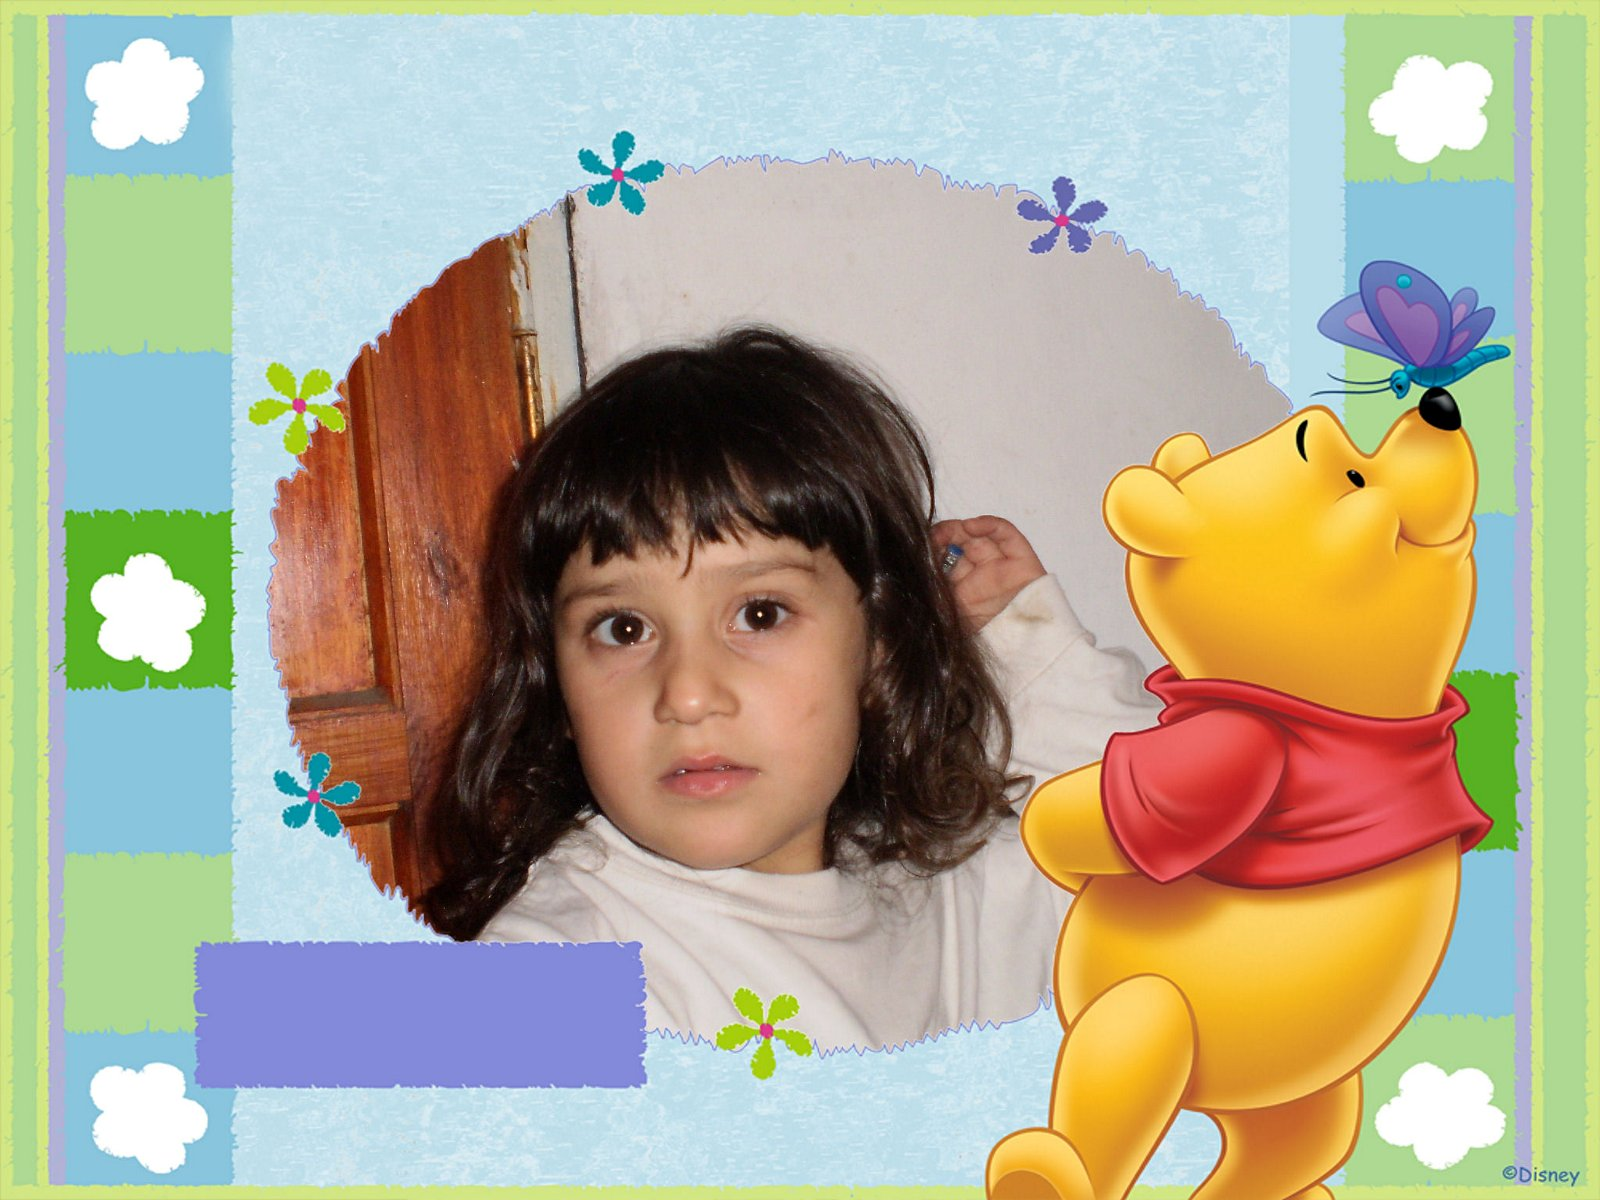 Photo editor | BeFunky: Free Online Photo Editing and